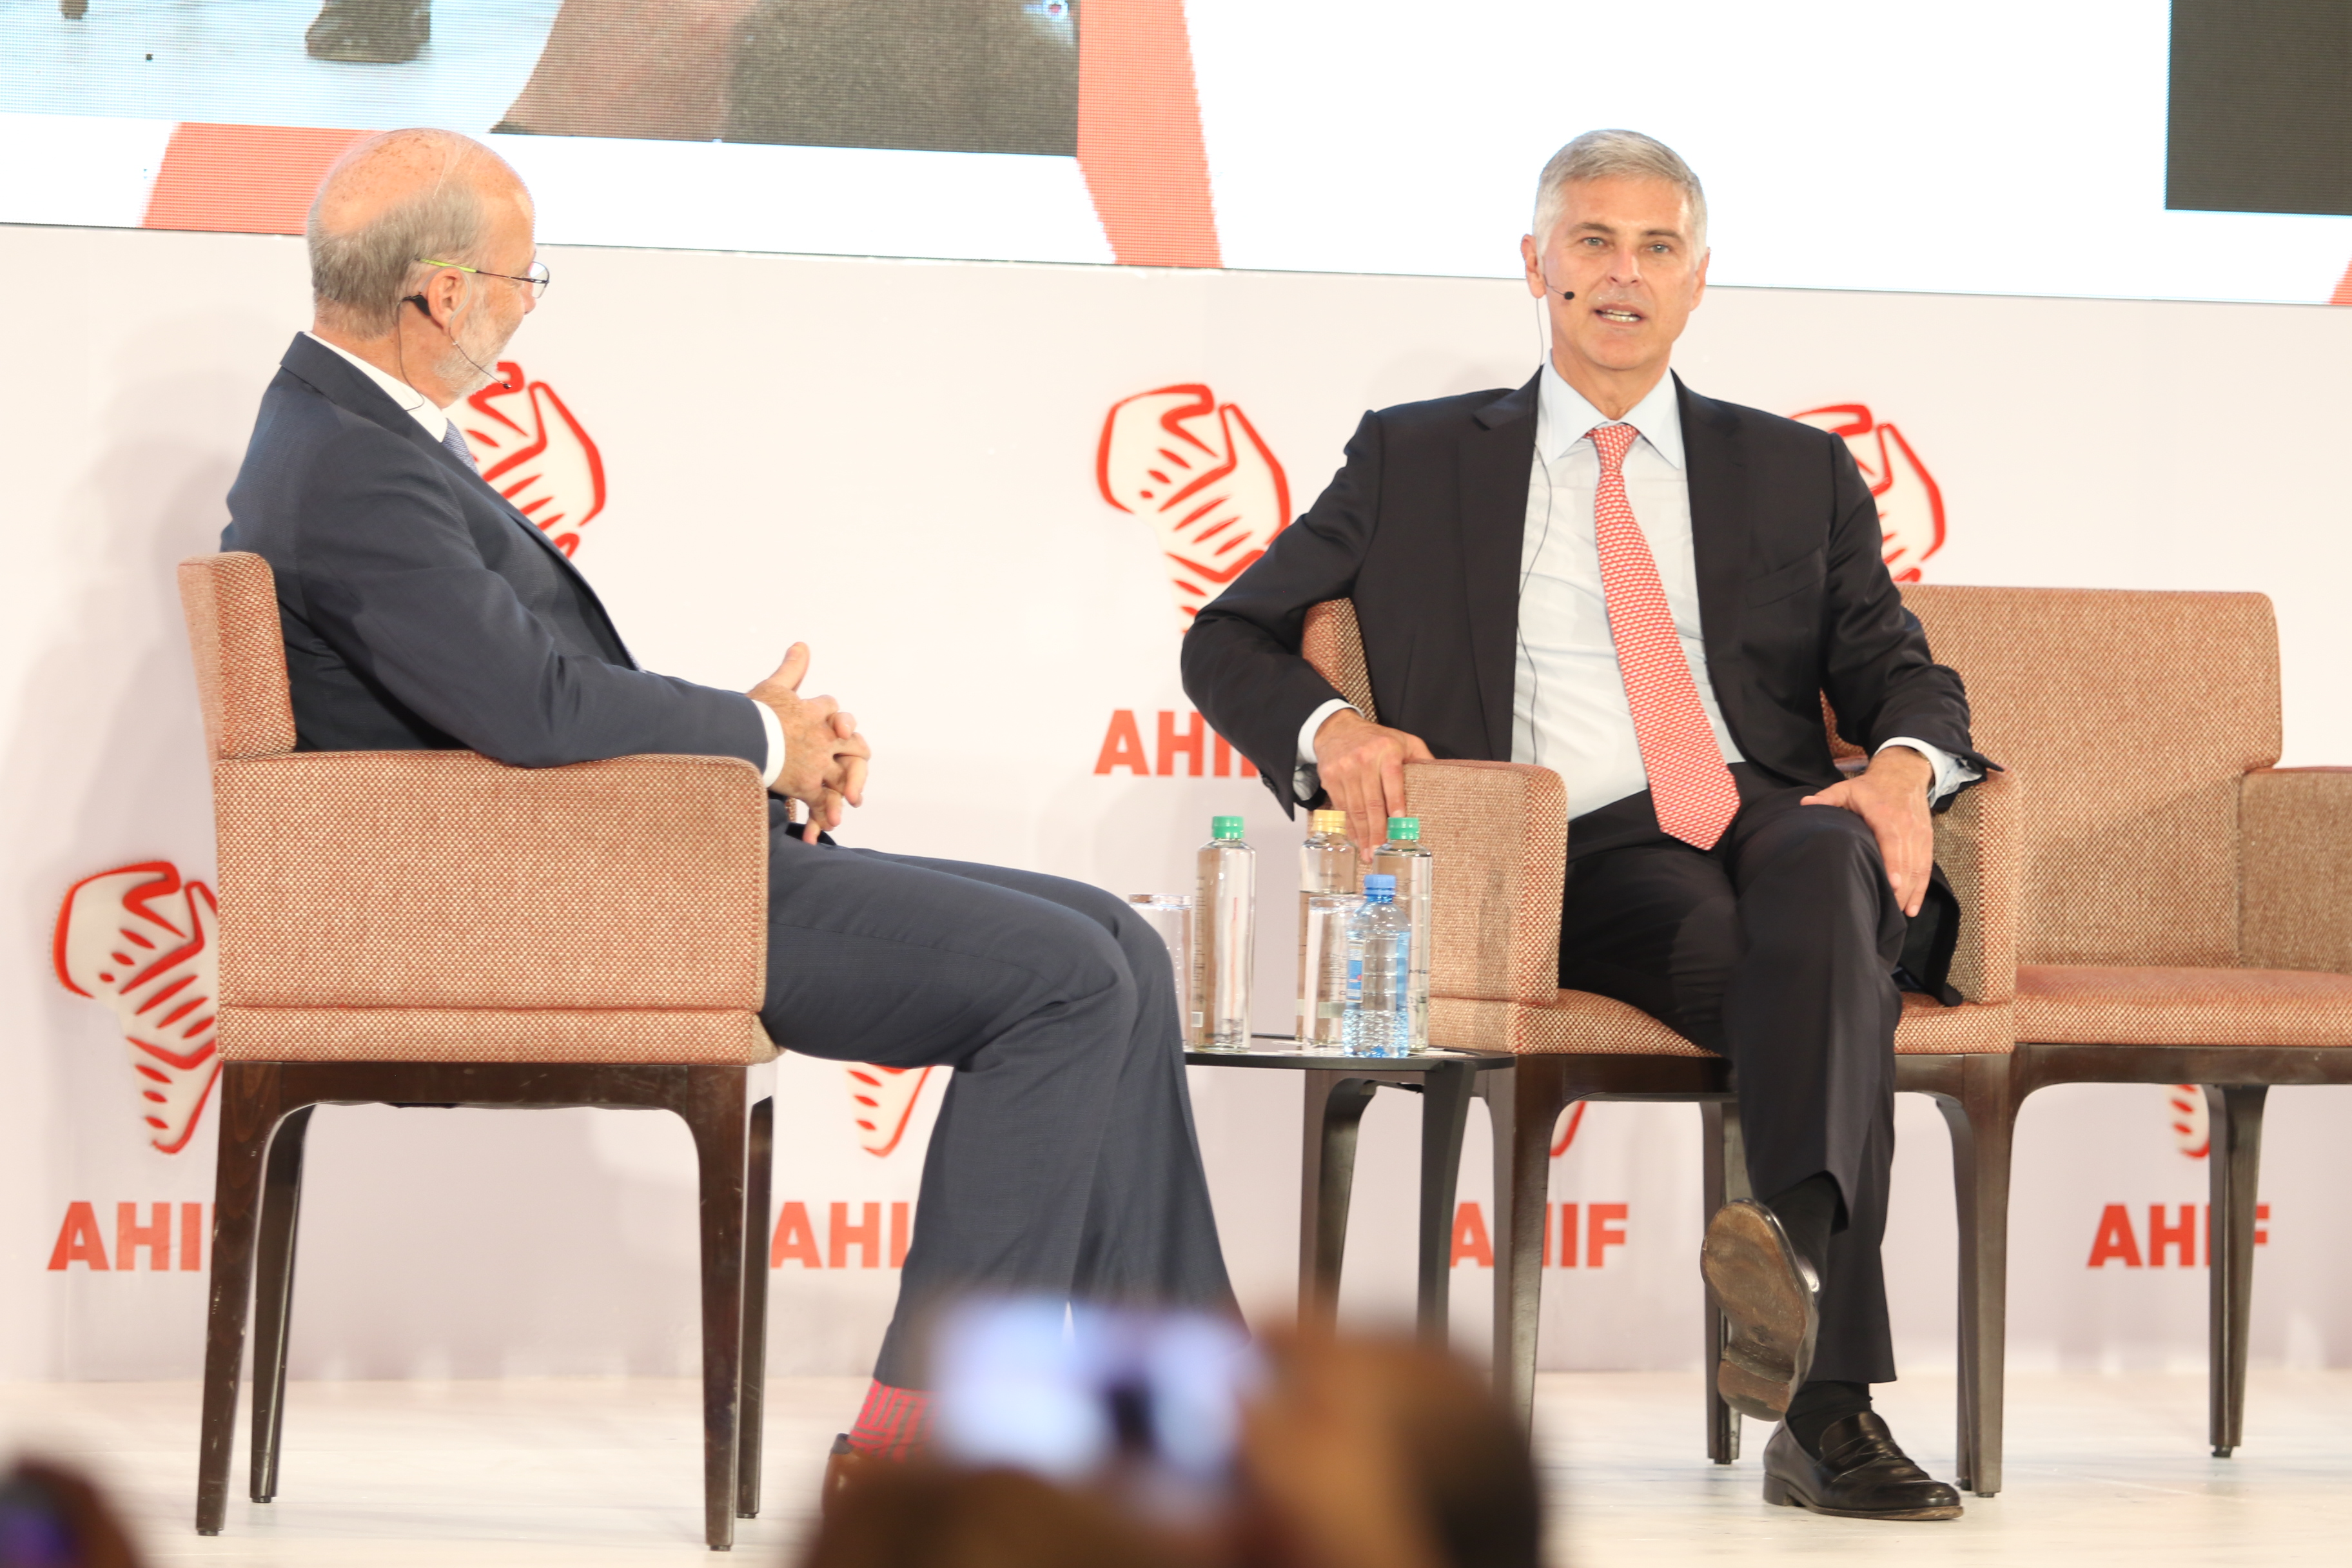 Economic impact of Africa's top hotel conference, AHIF revealed